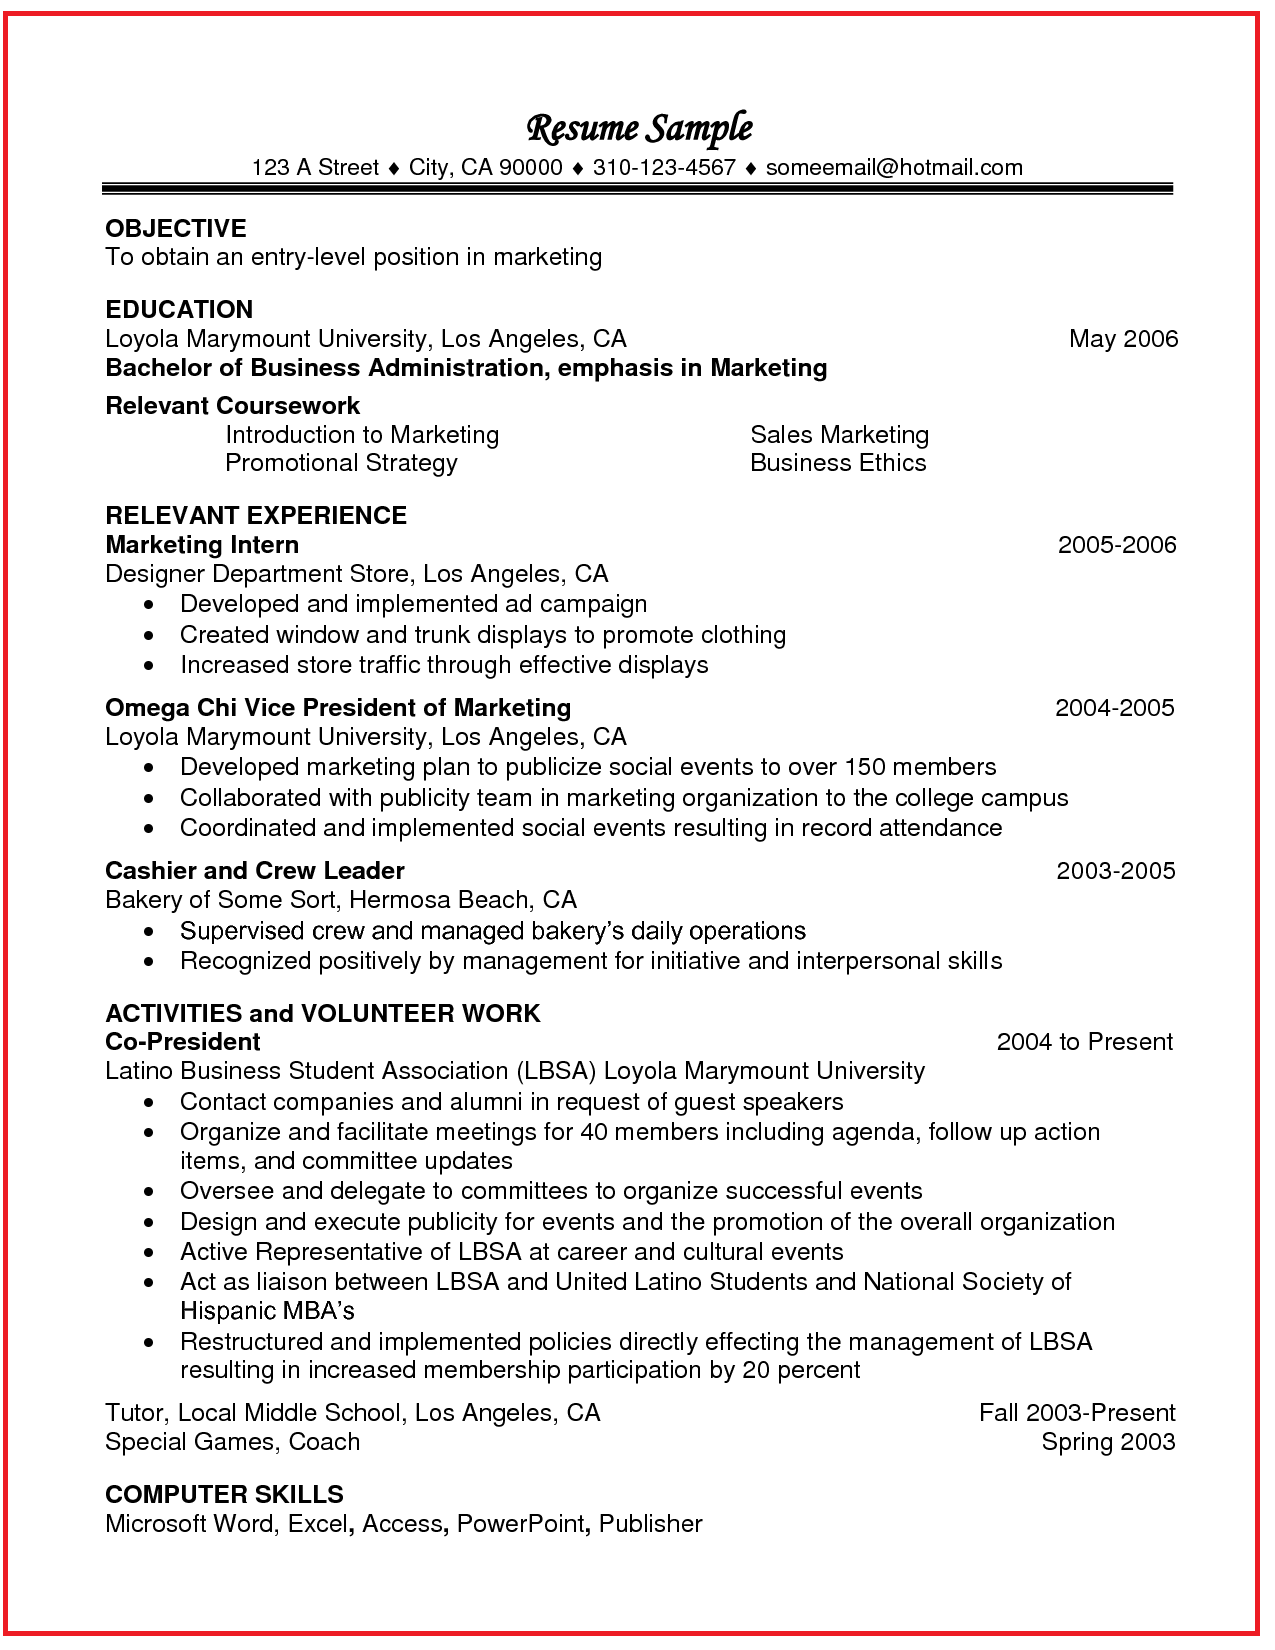 resume Resume Coursework relevant coursework in resume example httpwww jobresume website